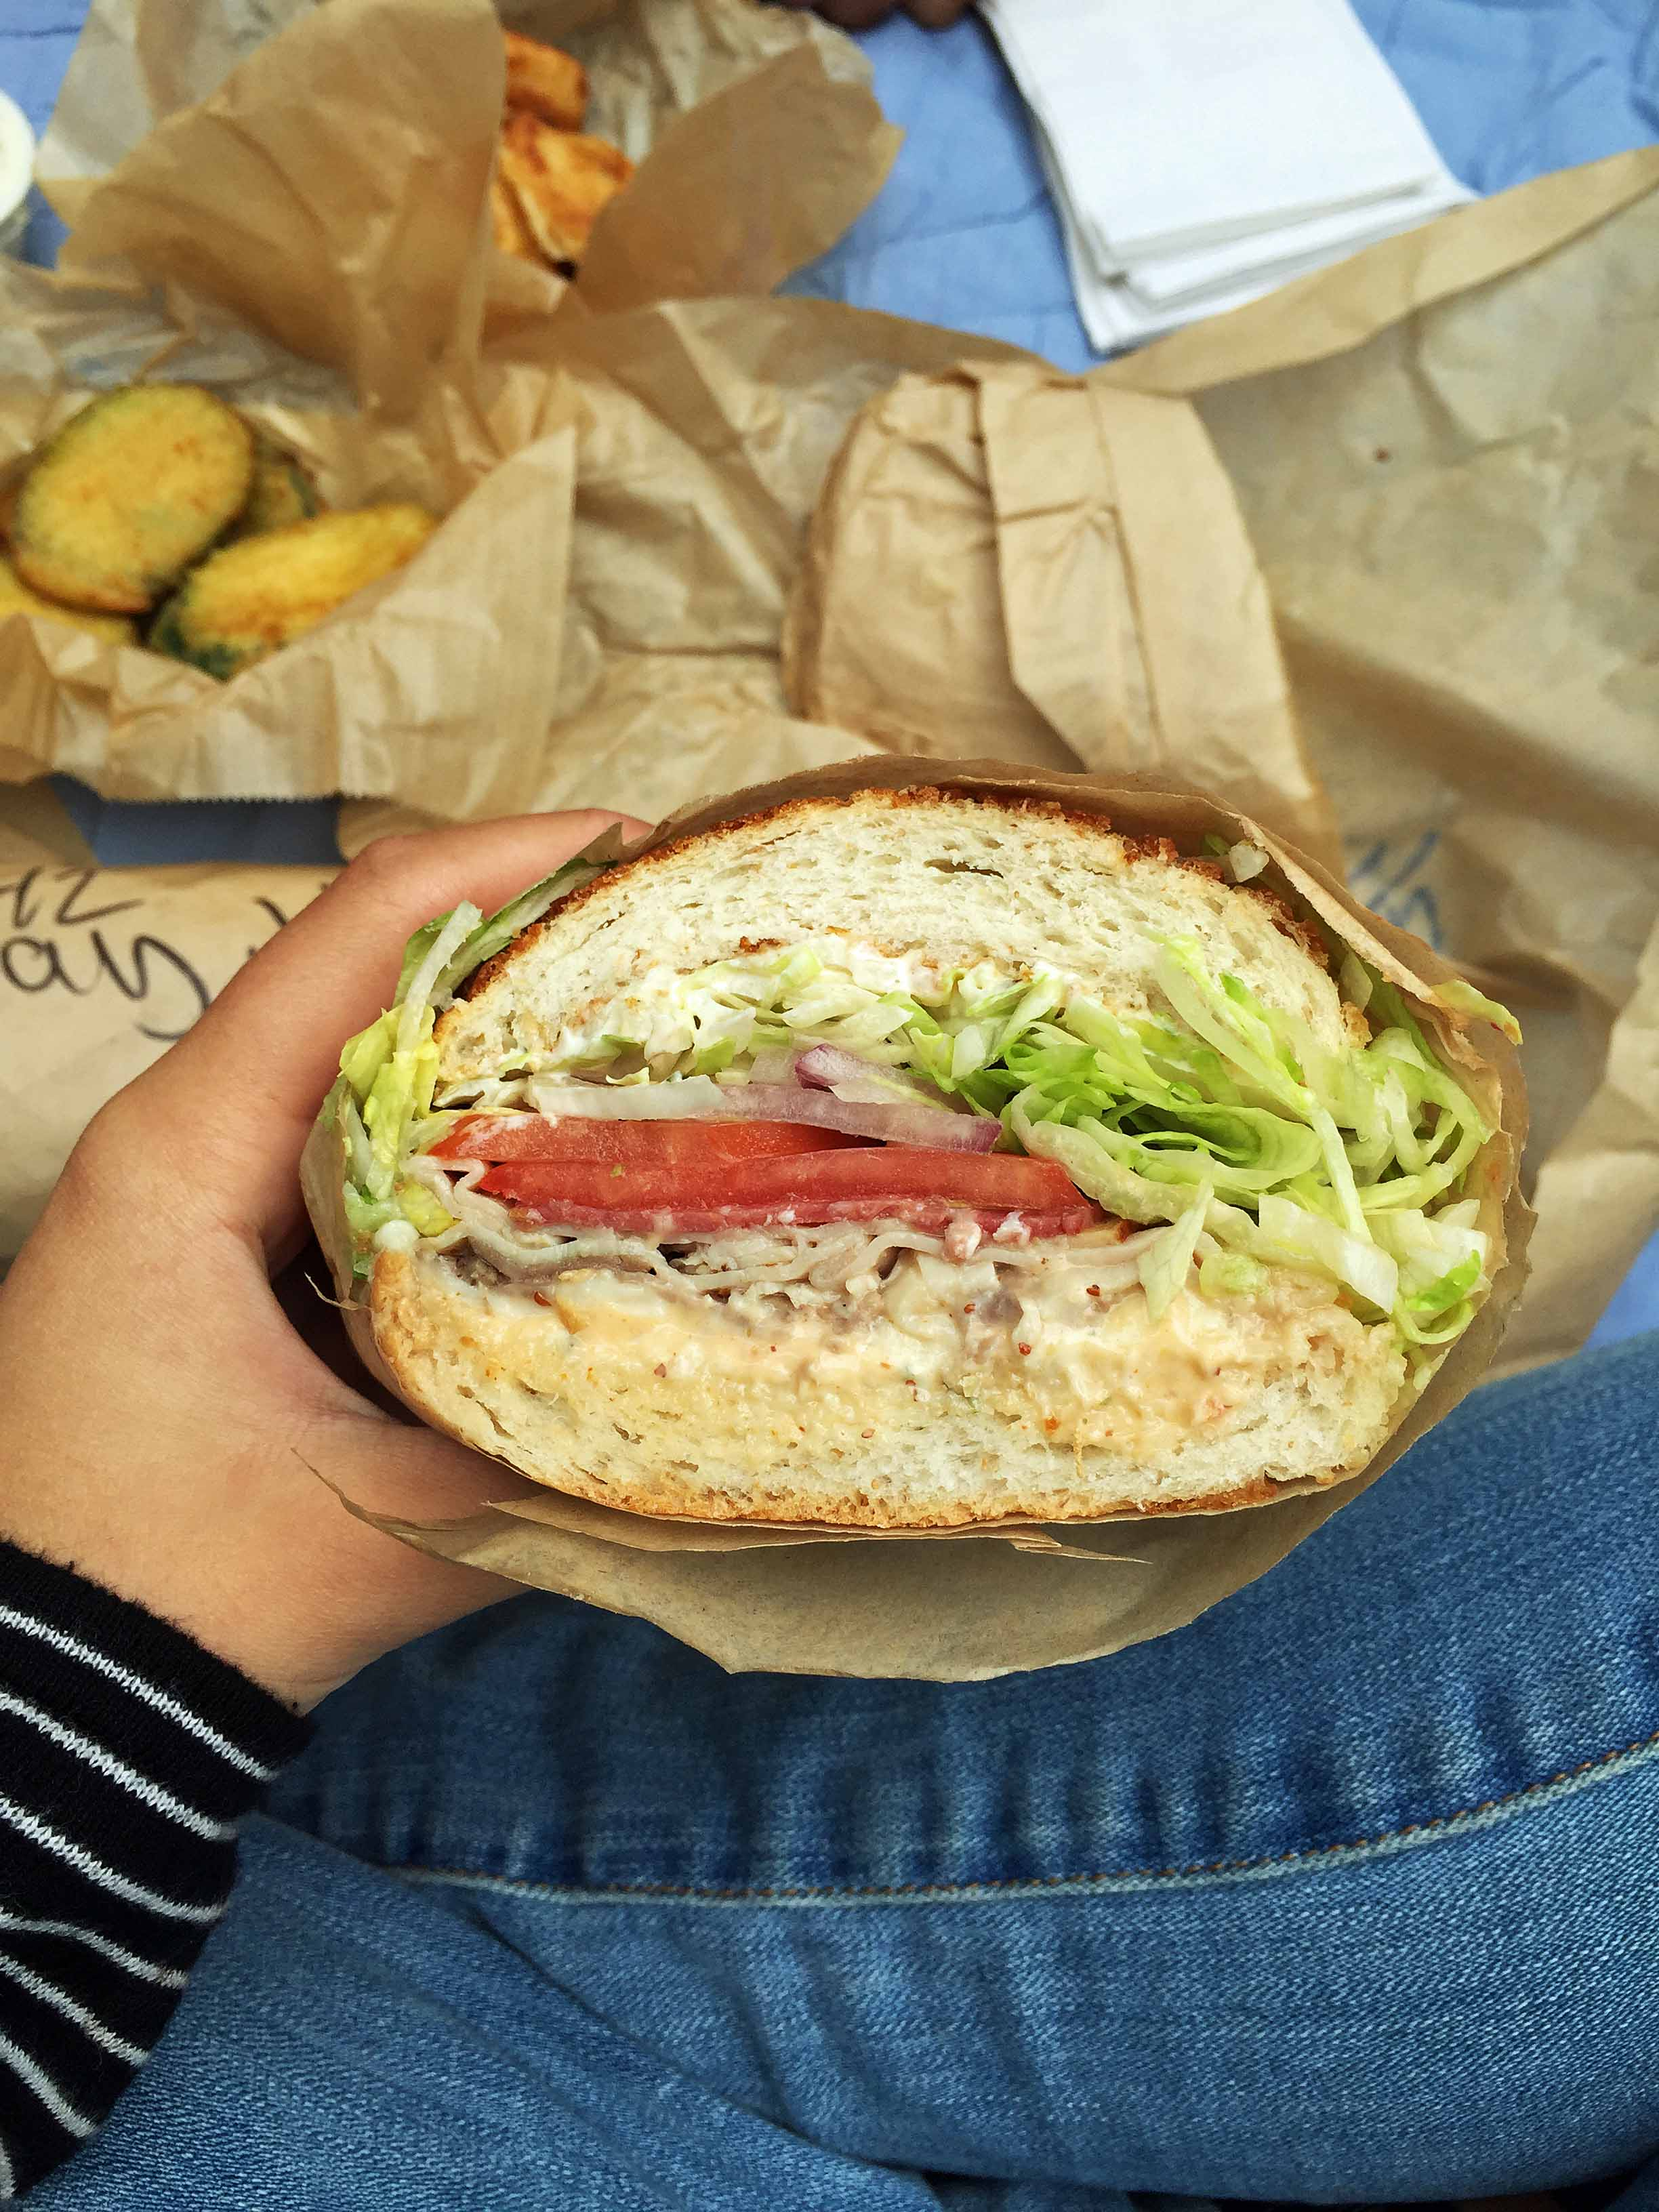 Ike Sandwiches Best Food on Pacific Coast Highway Road Trip